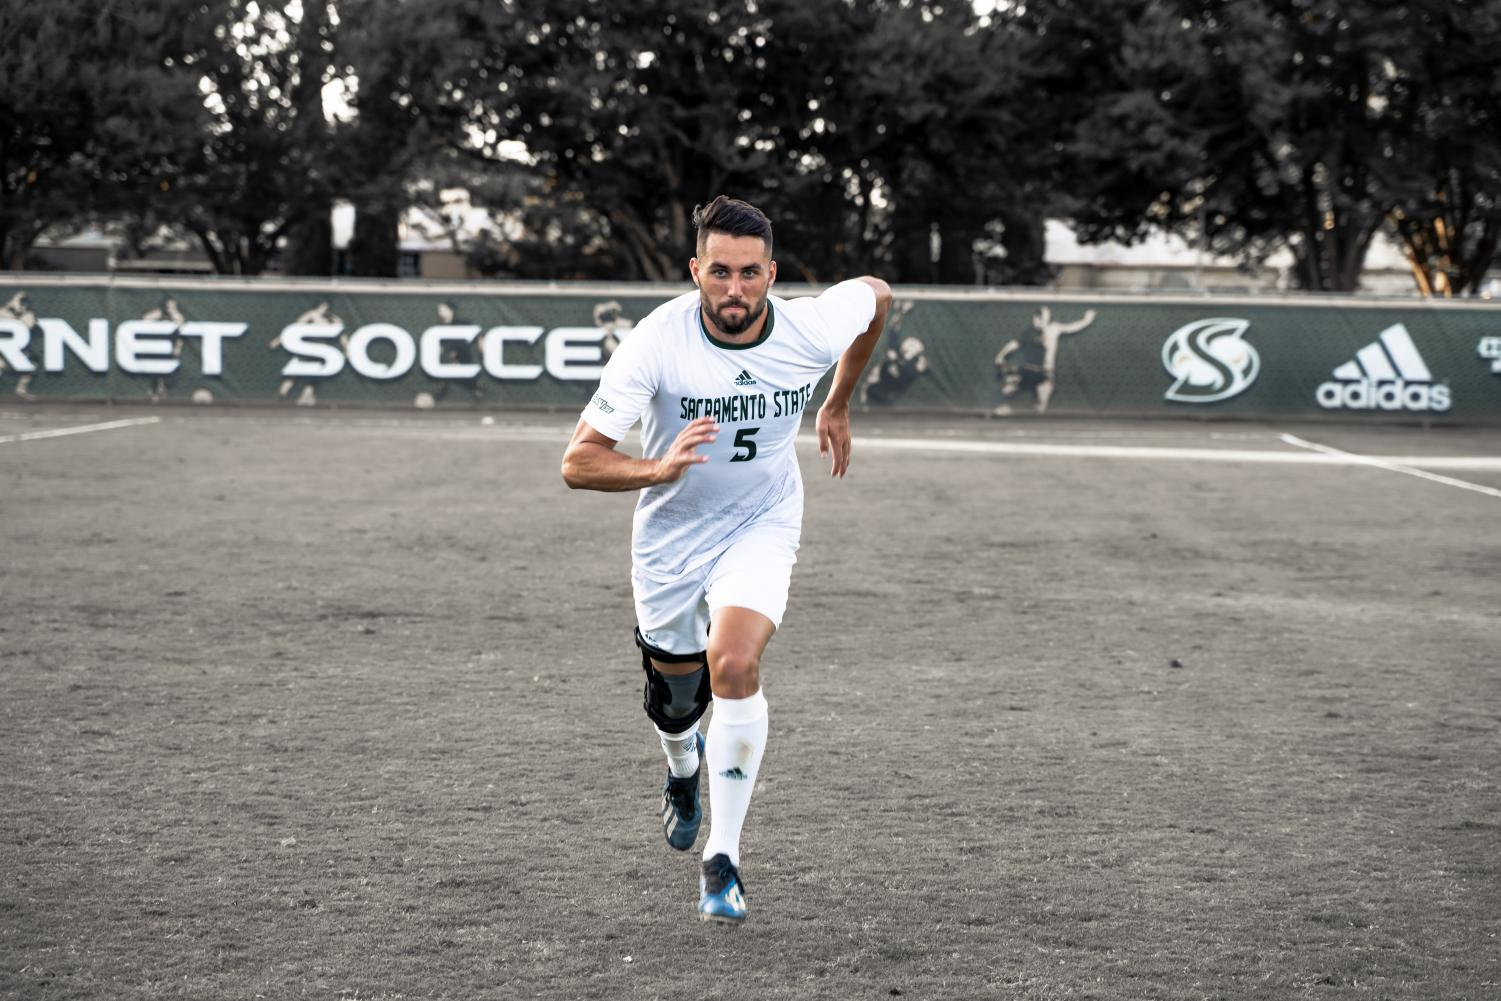 Sac State senior defender Mac Harrington runs toward the camera in this photo illustration Thursday, Sept 19, after a game against the University of San Francisco. Harrington is coming back from a torn ACL that prematurely ended his junior season Sept. 29, 2018.